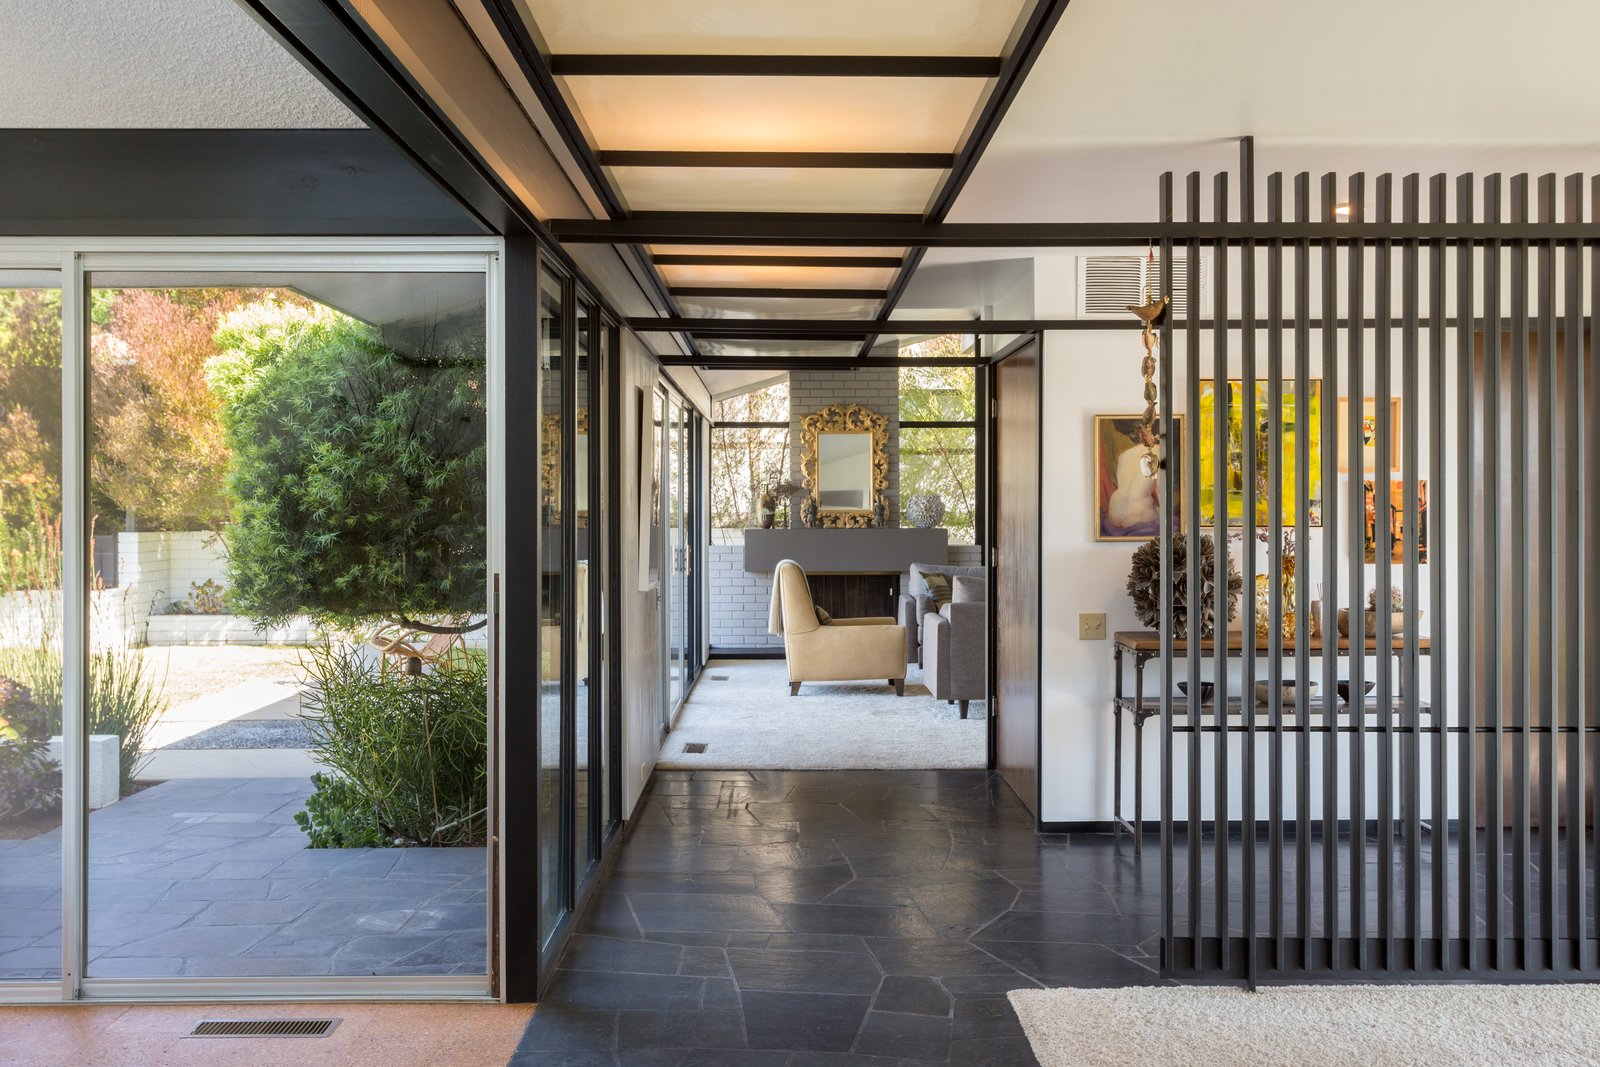 Hallway  Photo 3 of 14 in Offered at $899K, a Restored Midcentury Abode Shines in Southern California